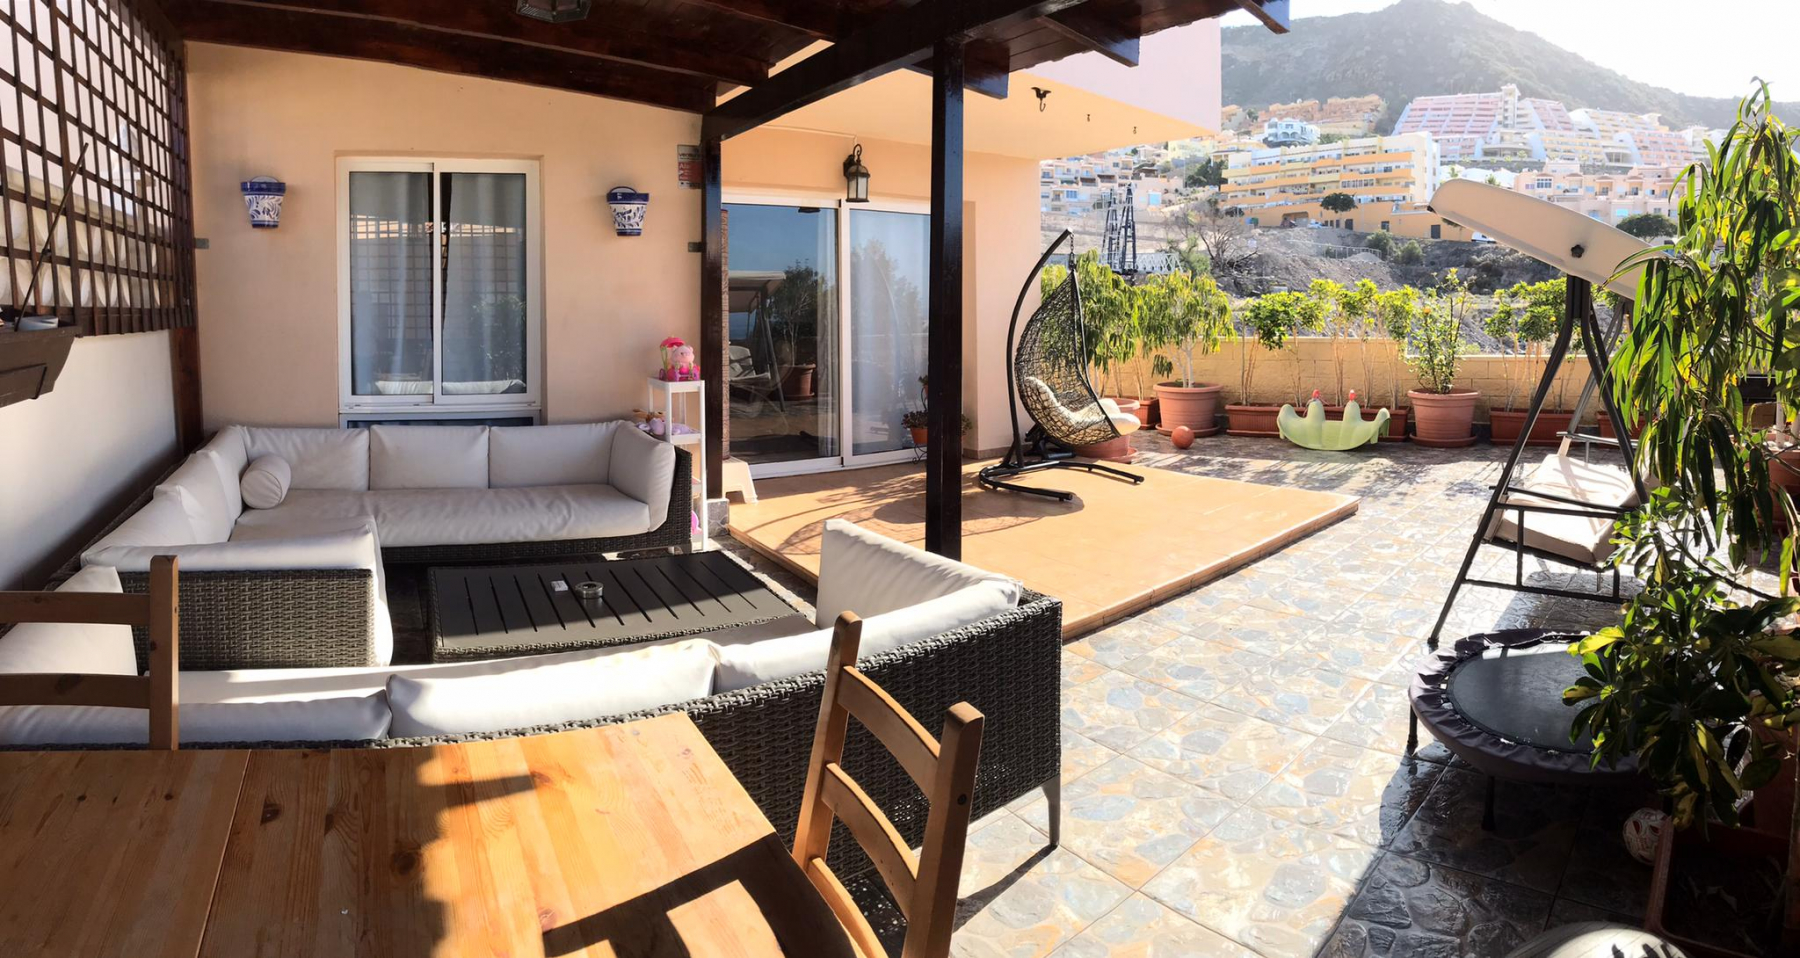 Properties for Sale in Tenerife, Canary Islands, Spain | SylkWayStar Real Estate. 4 bedrooms Townhouse - El Madroñal . Image-26202